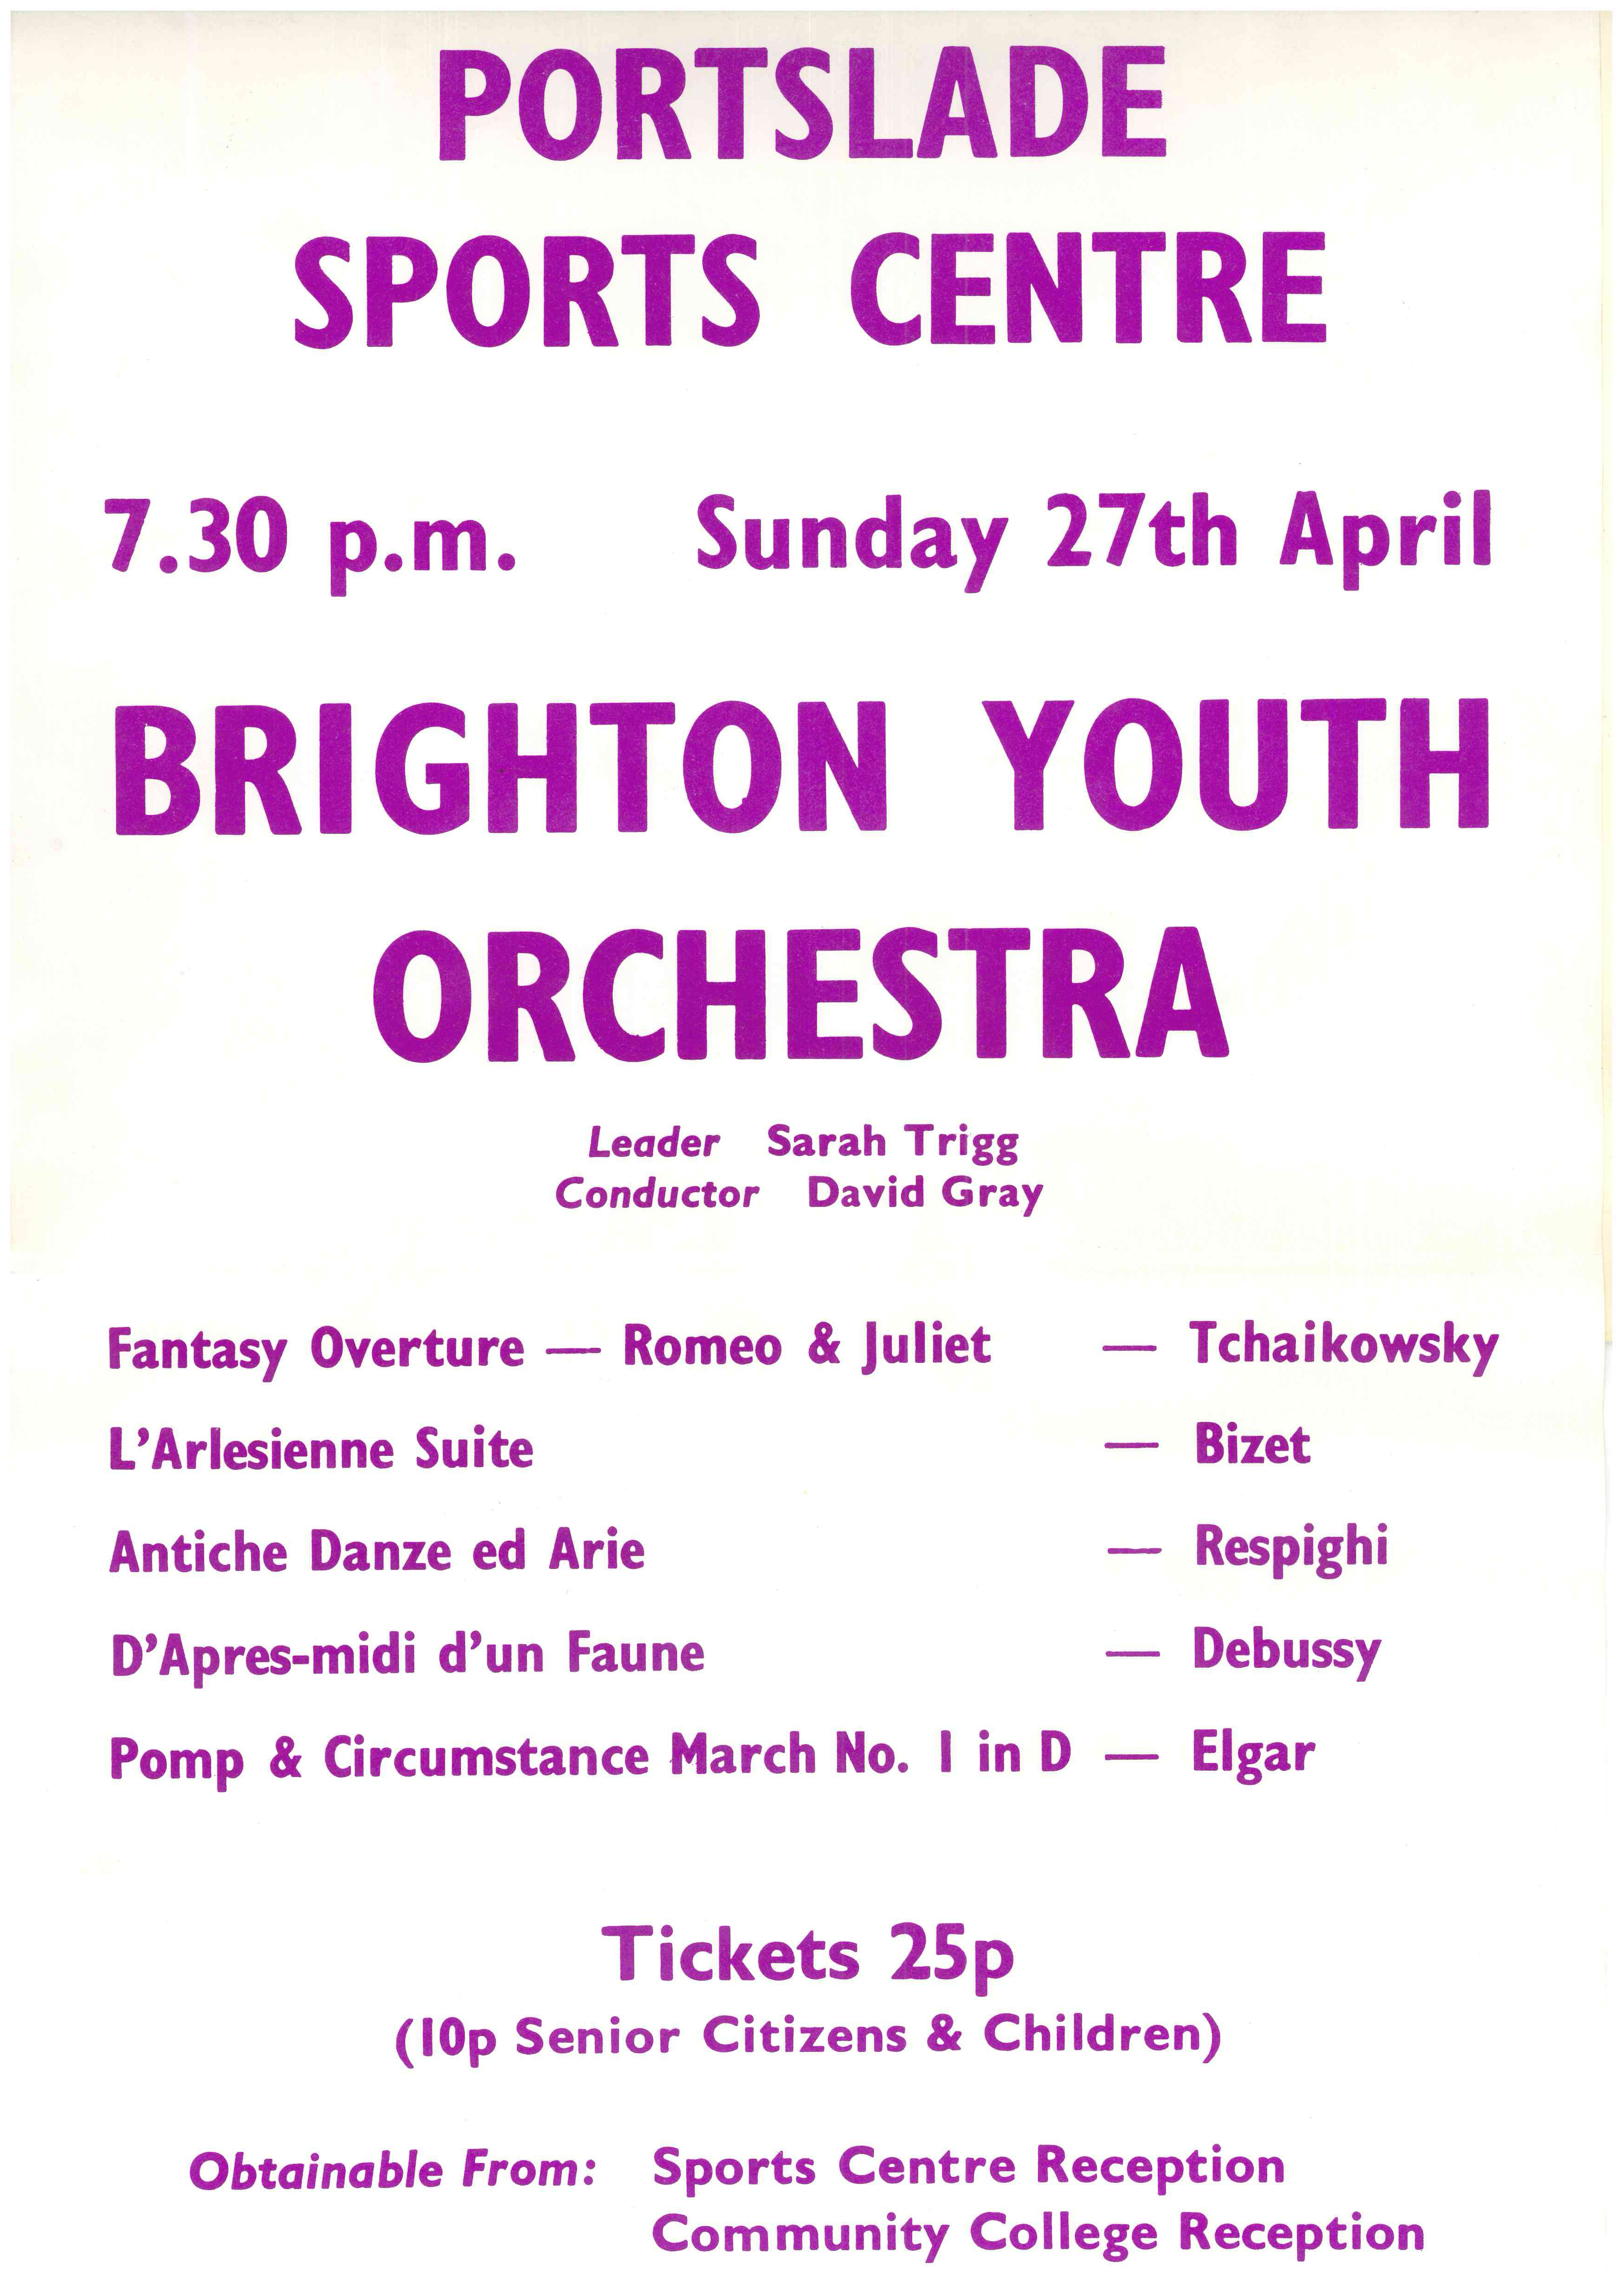 10017-Portslade Sports Centre, 27th April 1975.jpg